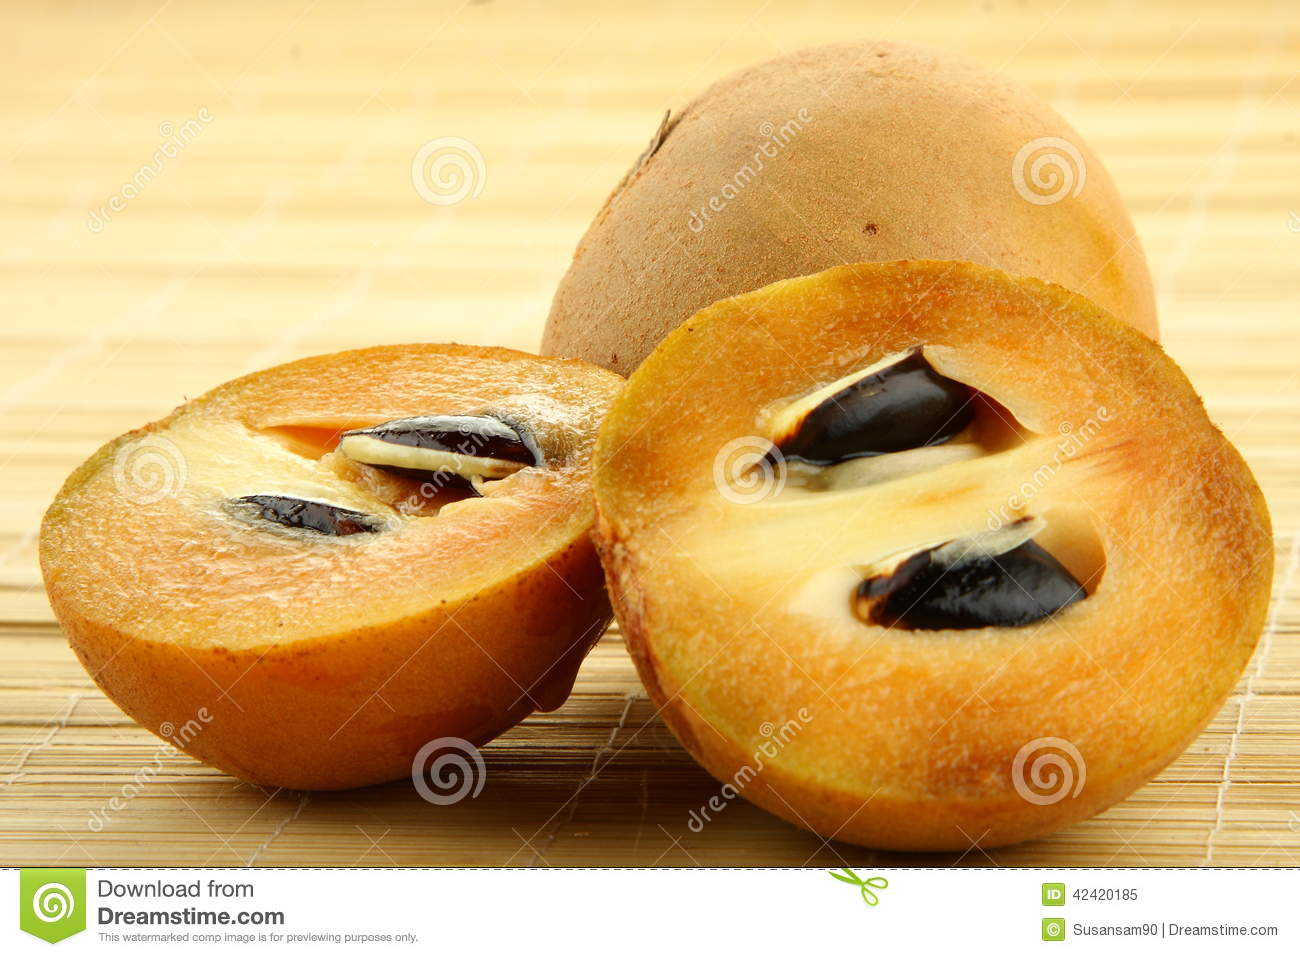 Pictures Of Chikoo Fruit